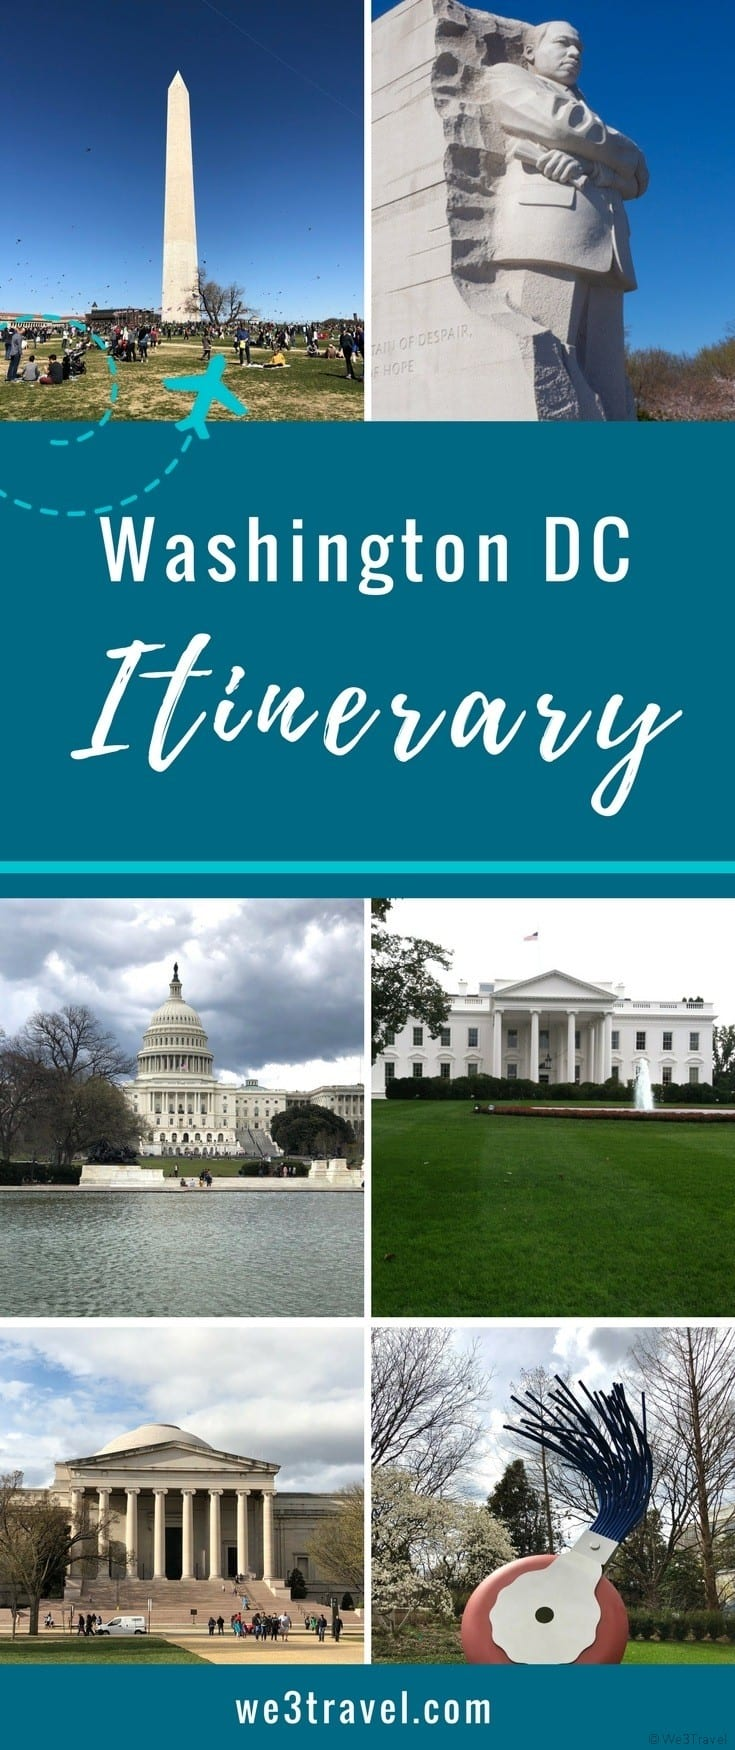 Washington DC itinerary for visiting museums and monuments with kids. Check out this sample 3 day itinerary and tips for visiting Washington DC. #washingtondc #dcwithkids #itinerary #familytravel